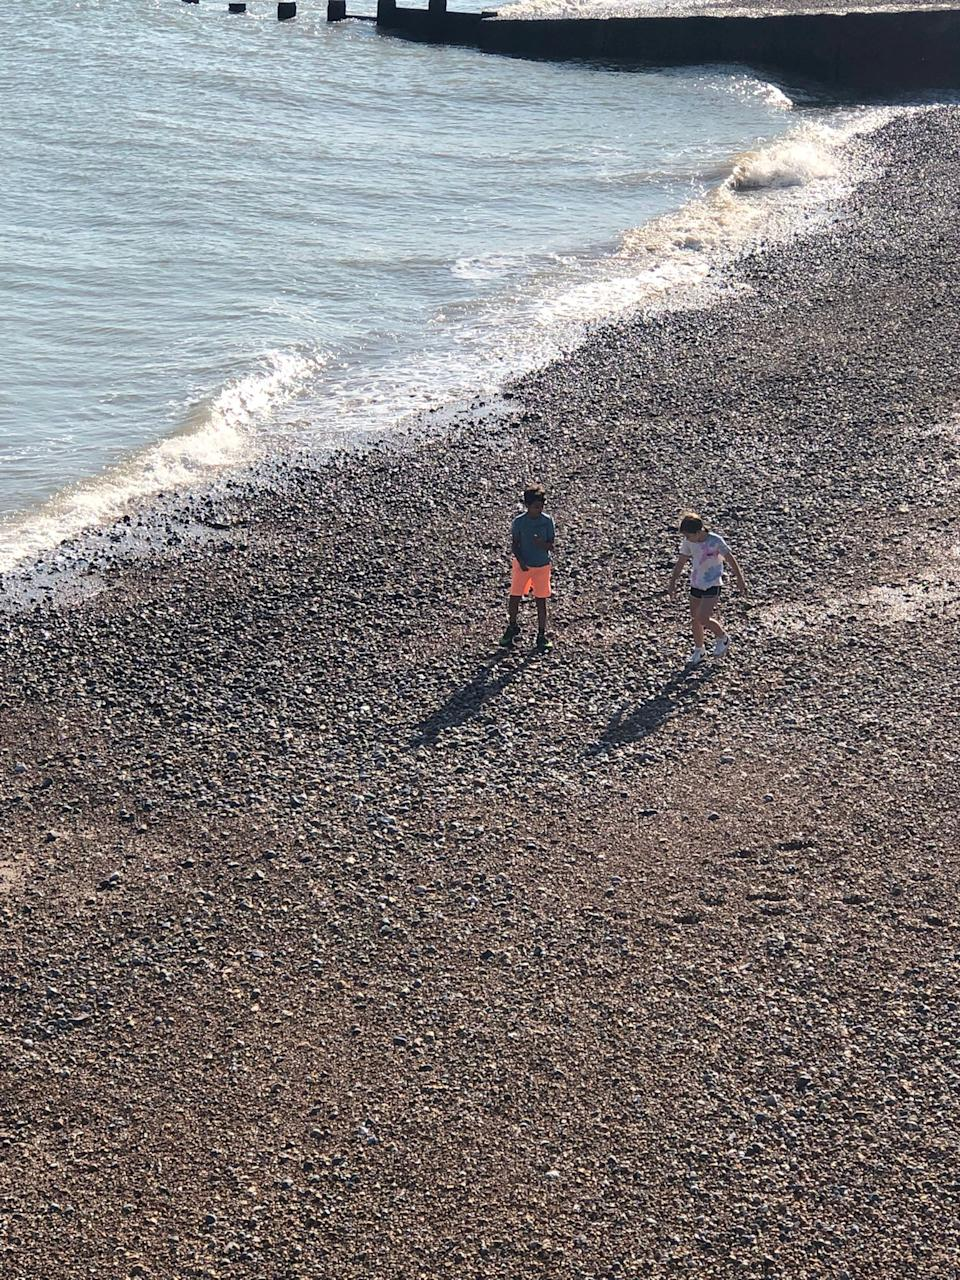 Oliver Quarte with a friend on the beach near Hastings before the incident (SWNS)